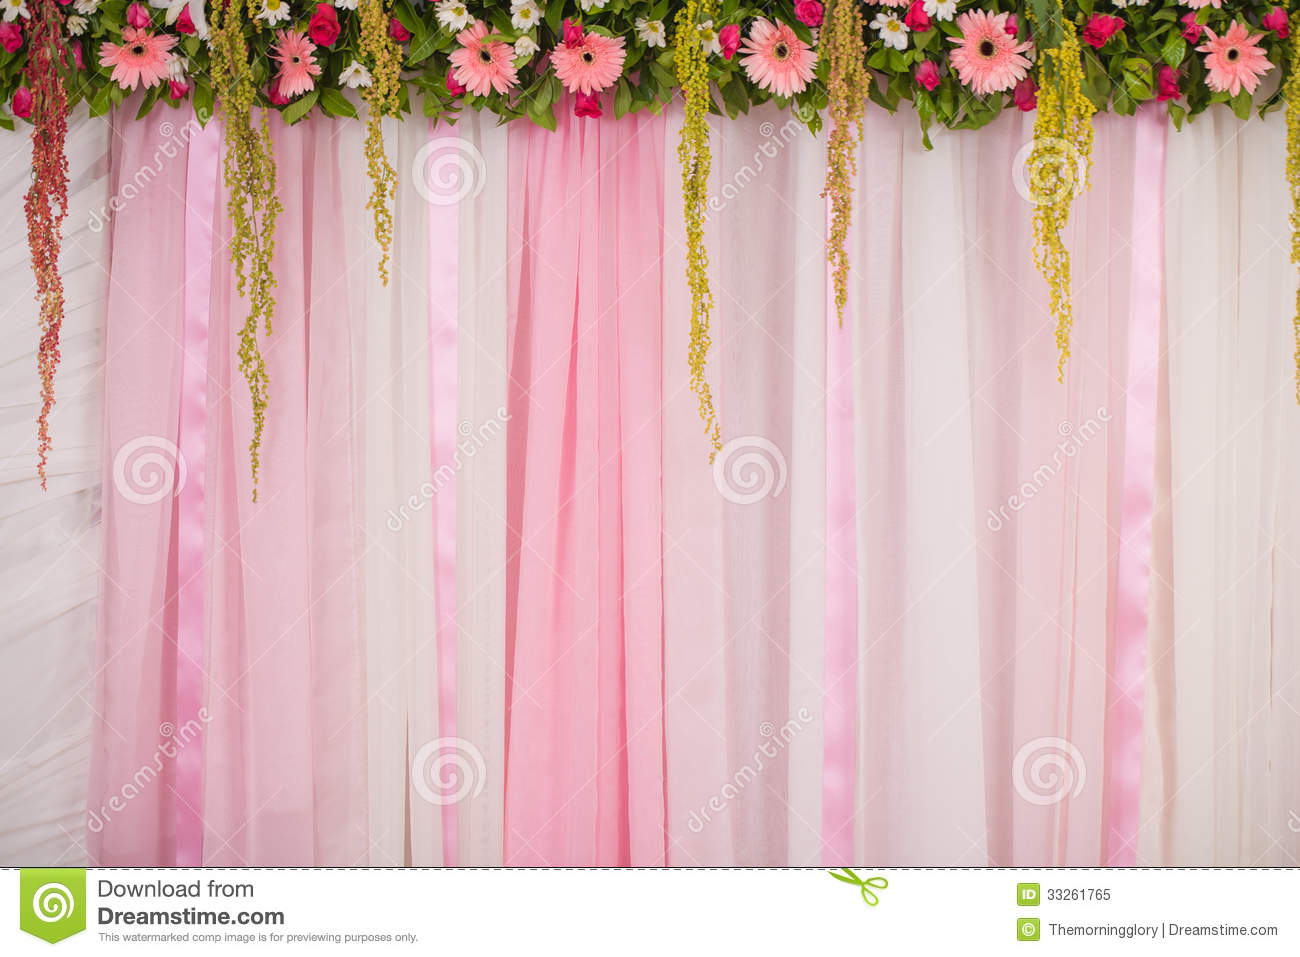 wedding curtains with Royalty Free Stock Photo Beautiful Backdrop Flowers Arrangement Wedding Ceremony Pink Image33261765 on Royalty Free Stock Images Flower Background Lace Seamless Gold Image21836779 additionally Indias Brave Soldiers In Brighton 1914 moreover Engagement Decorations That Will Make You Go A  008576 further Vintage Background Ornate Baroque Pattern Vector 8538640 besides Rideau De Douche Transparent.